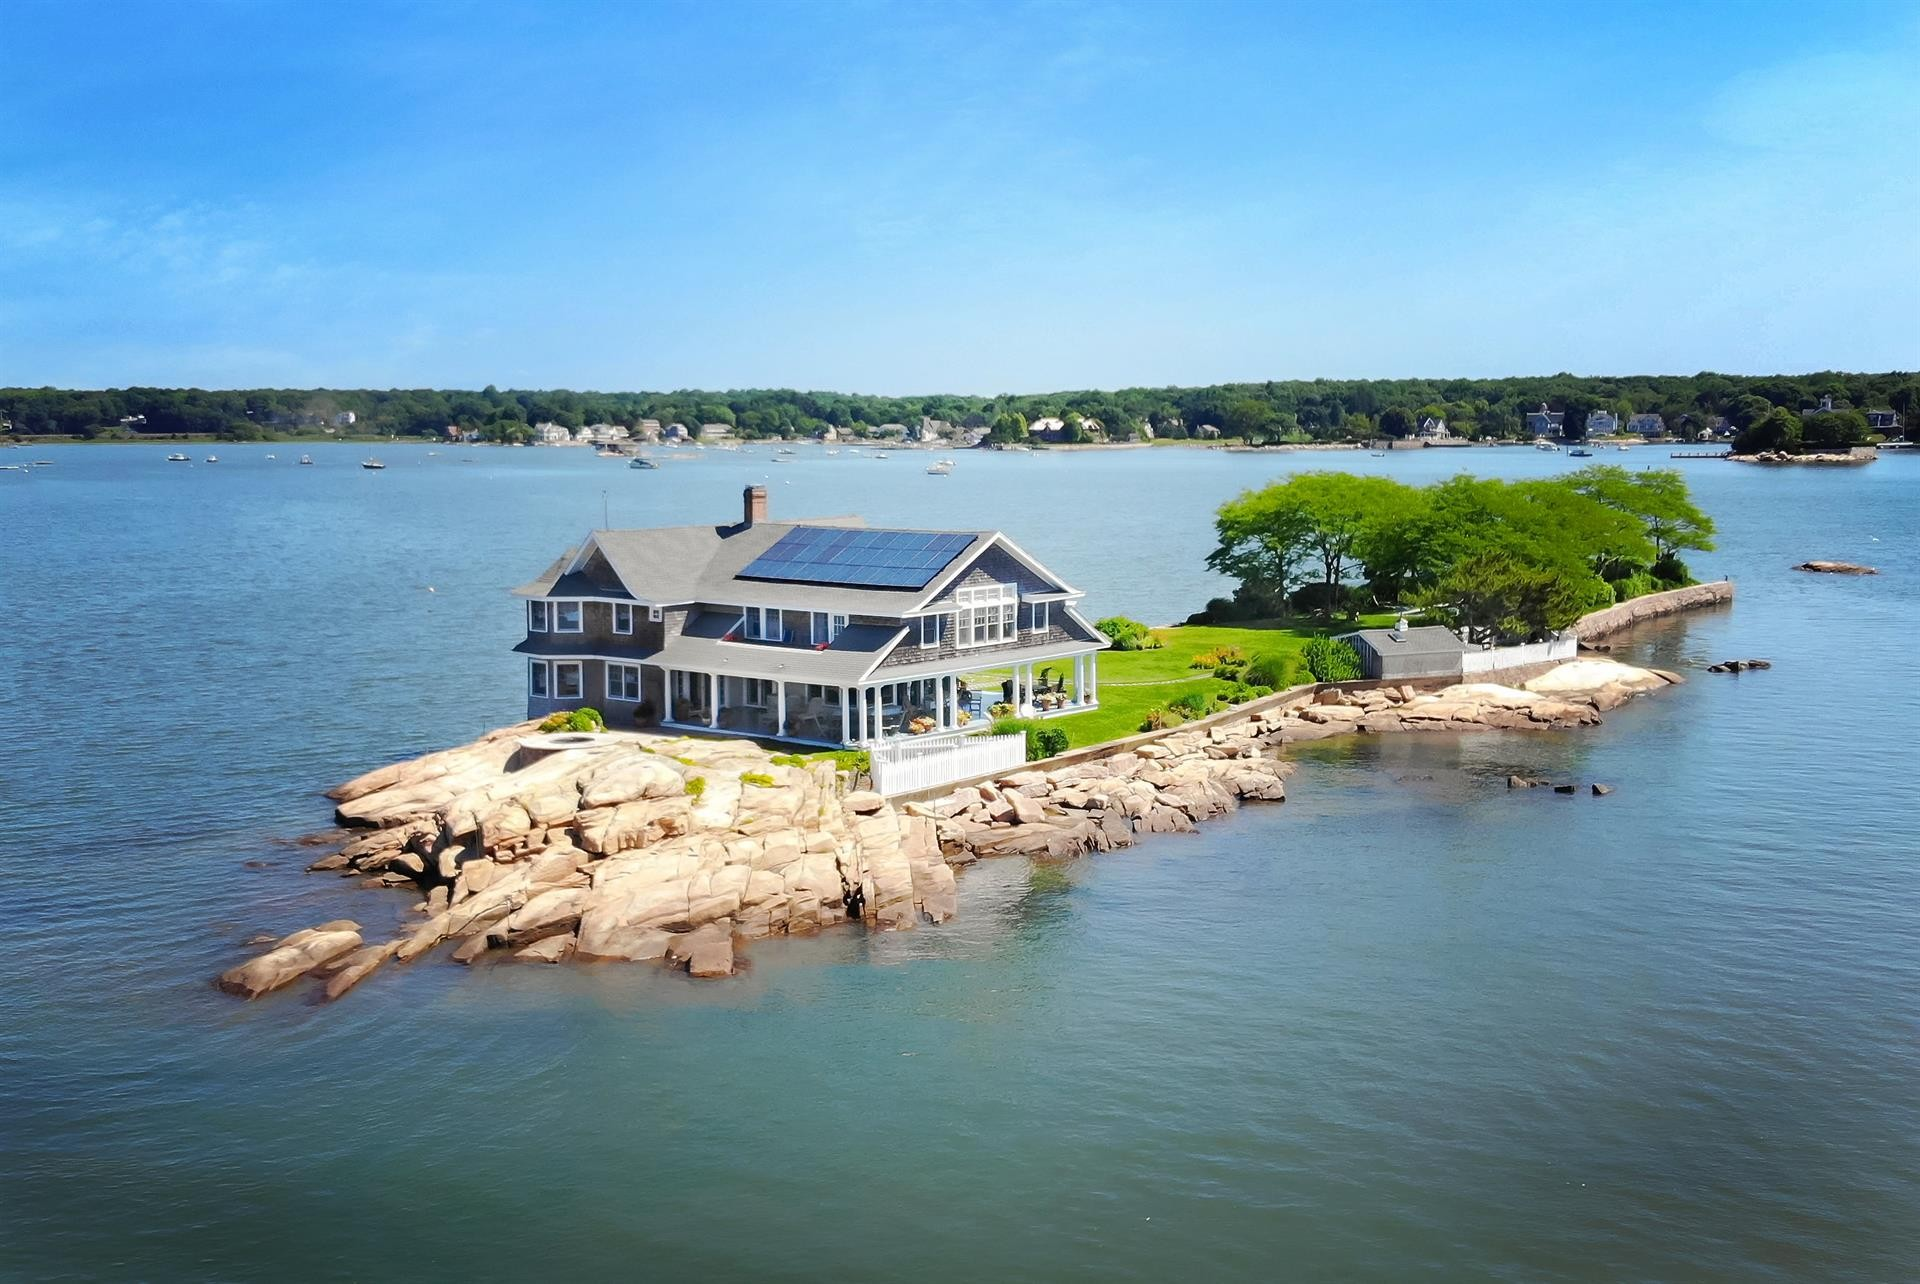 potato island, private retreat in the thimble islands a luxury private island for sale in branford, connecticut property id 170067461 christie s international real estate